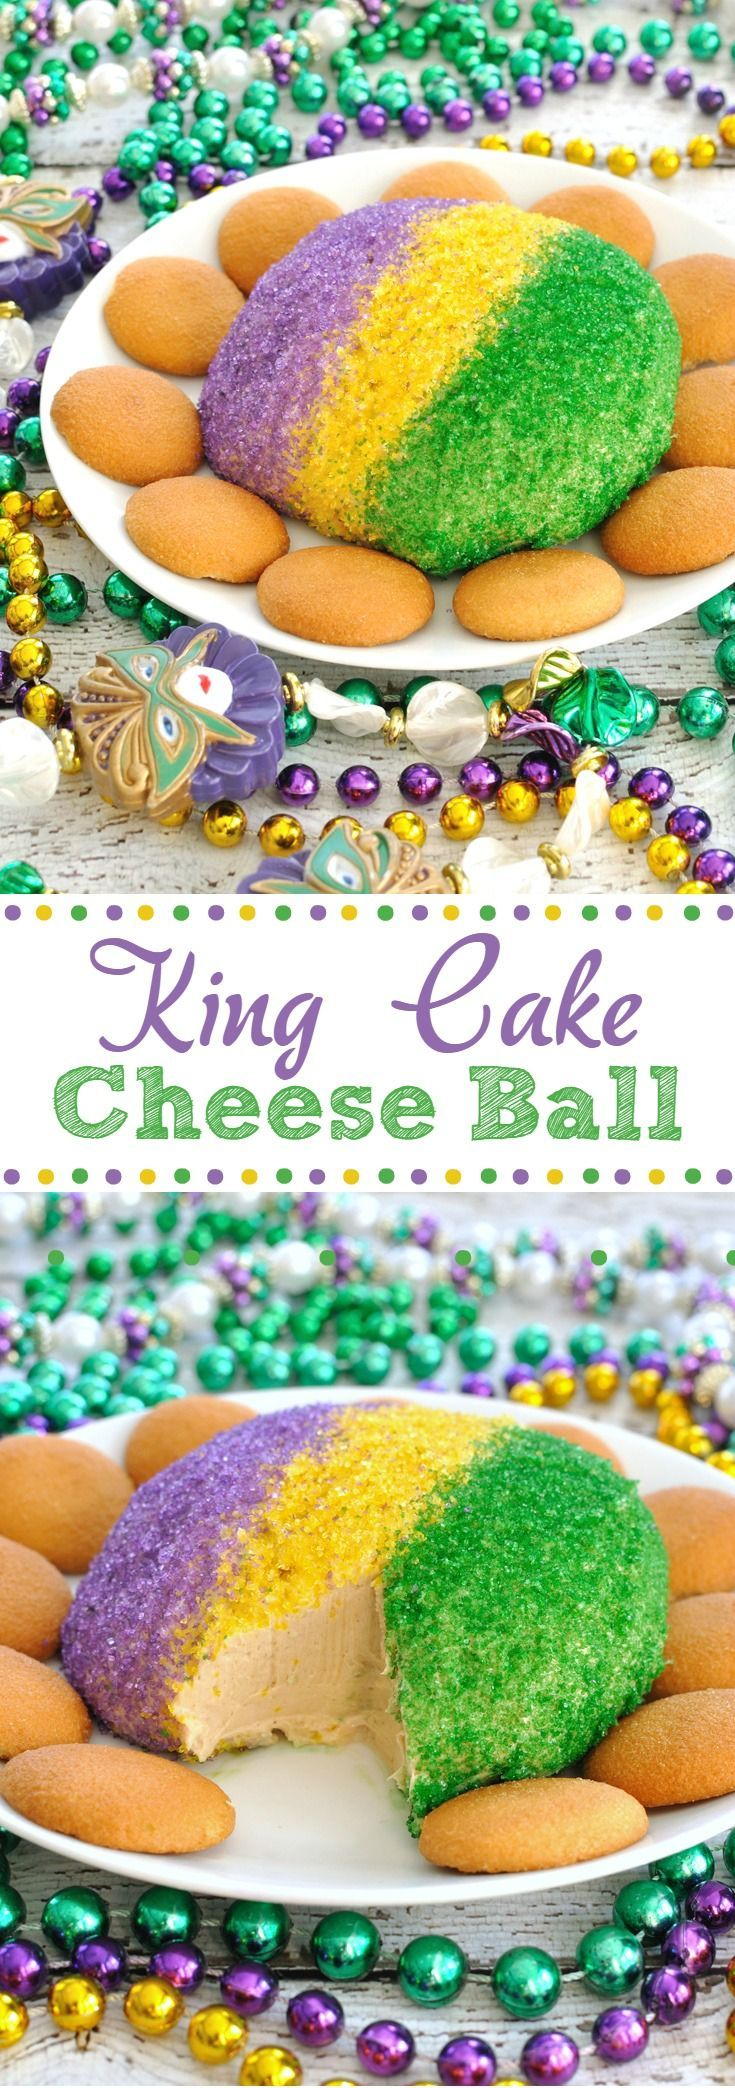 Celebrate Fat Tuesday! This Festive King Cake Cheese Ball has the flavor and colors of a King Cake, but in an easy to make cheese ball. Great dessert for Mardi Gras!